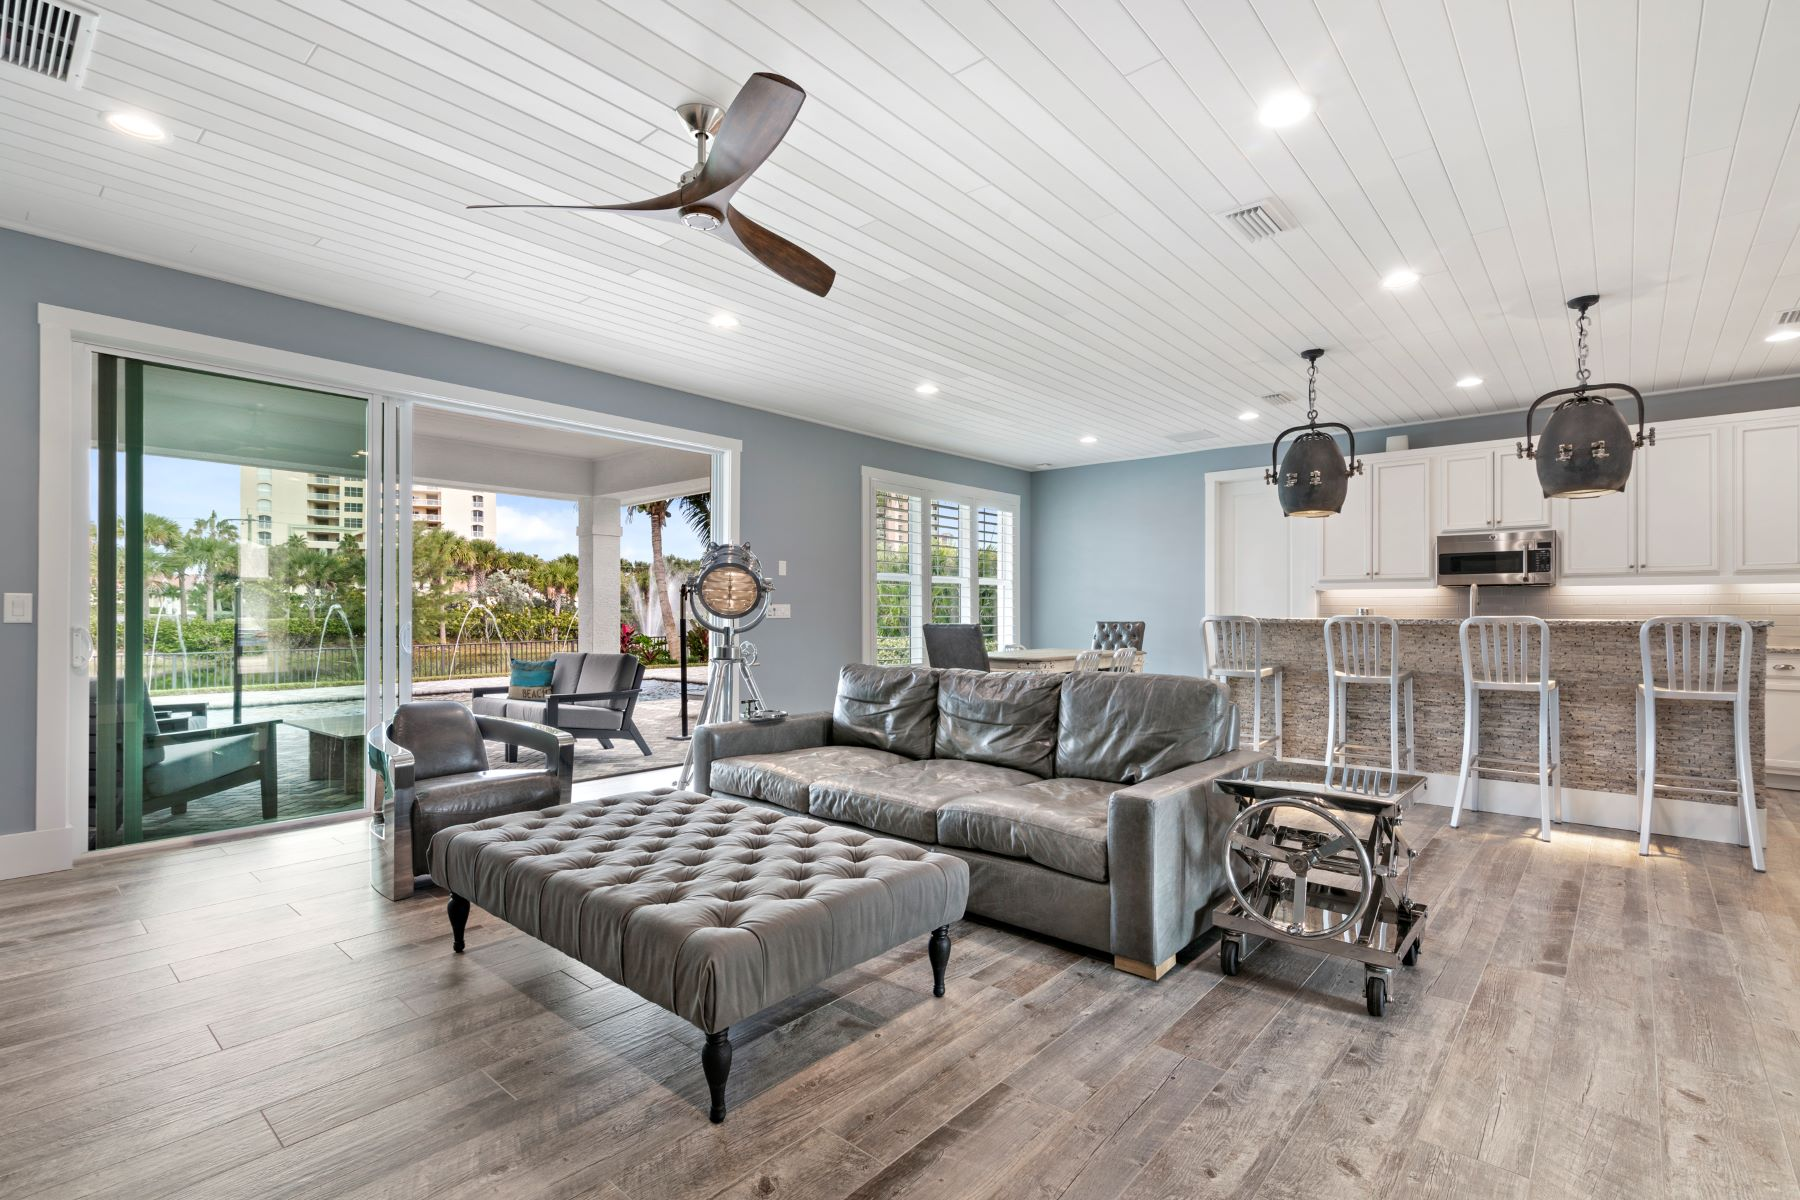 Single Family Homes for Active at Luxurious Lakefront Home 3918 Duneside Drive Hutchinson Island, Florida 34949 United States